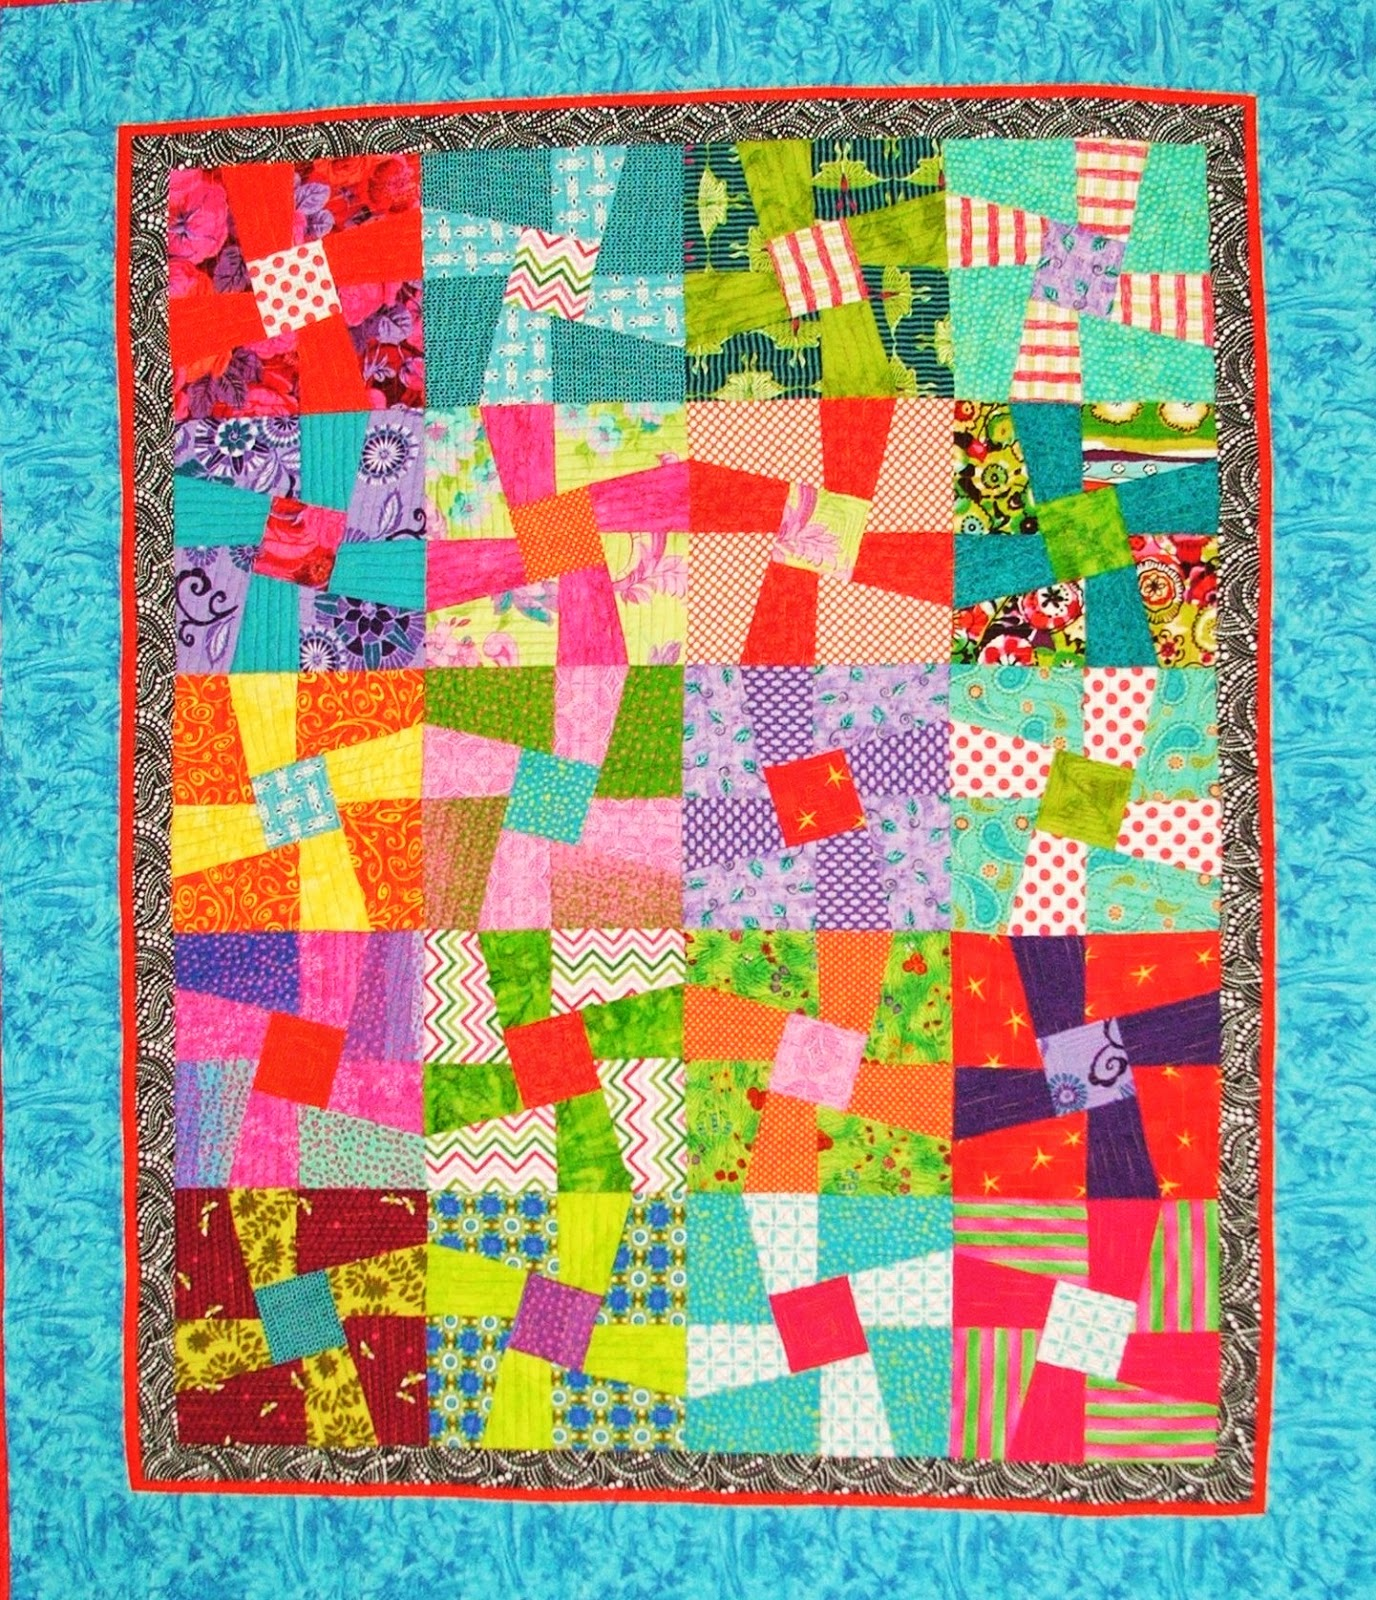 Helen Has Made Her Twisted Sister Quilt Varying The Direction Of Blocks And Using Brights